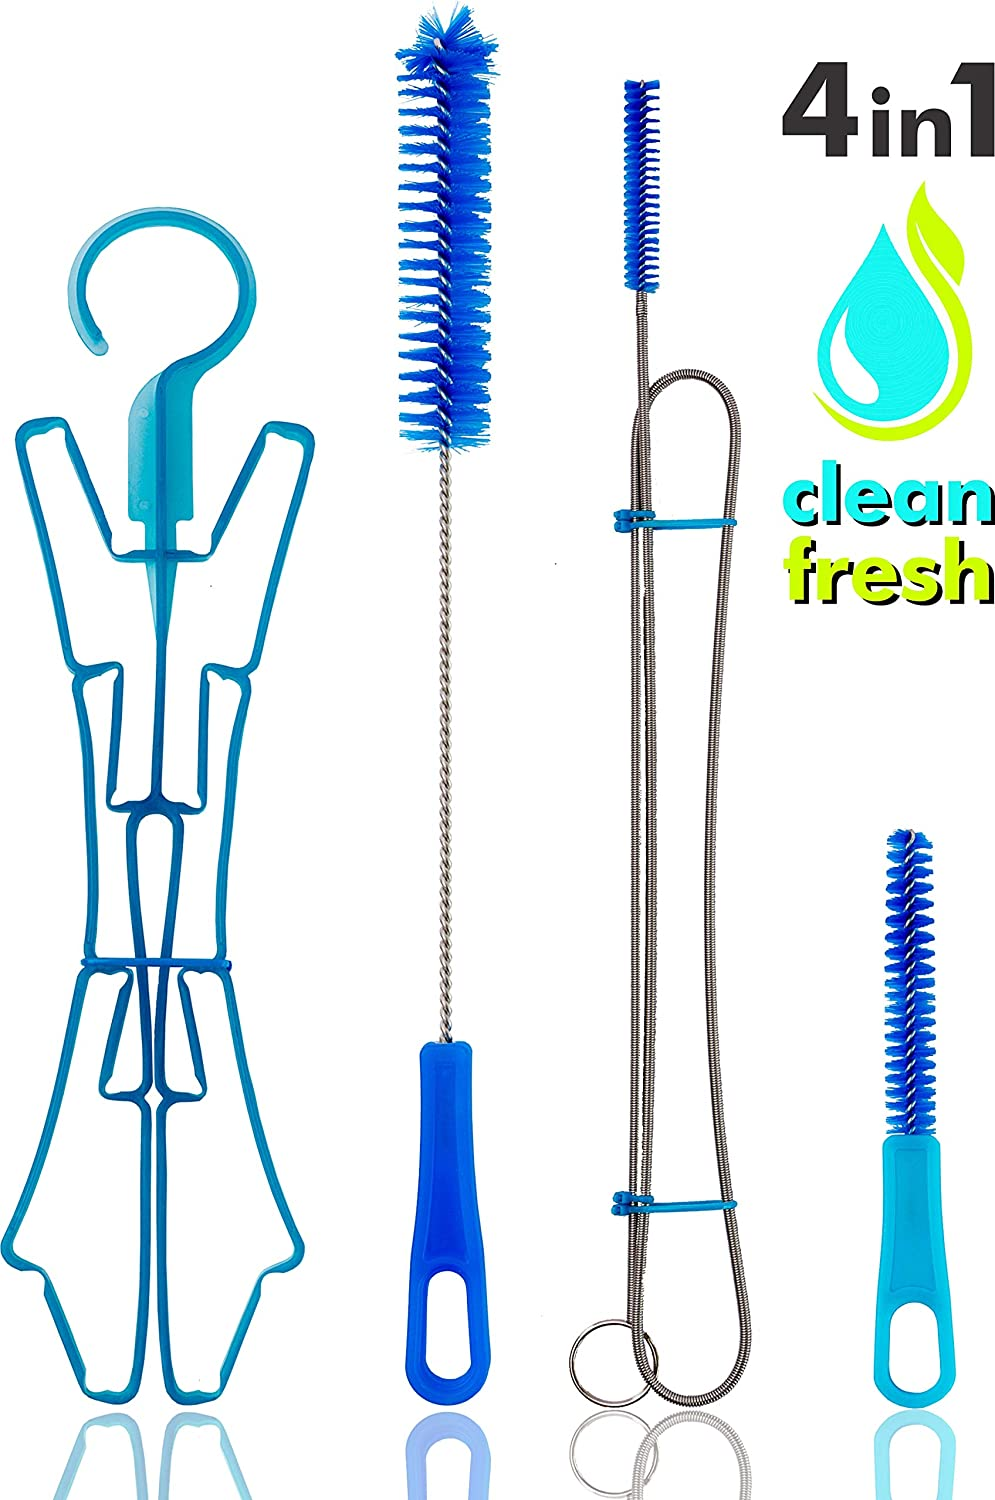 FREEMOVE Hydration Water Bladder Cleaning Kit | NO More Dirt| Universal for Hydration Bag Reservoir | Hydration Pack Bladder Cleaner | Flexible Brush, Big Brush, Small Brush and Drying Hanger